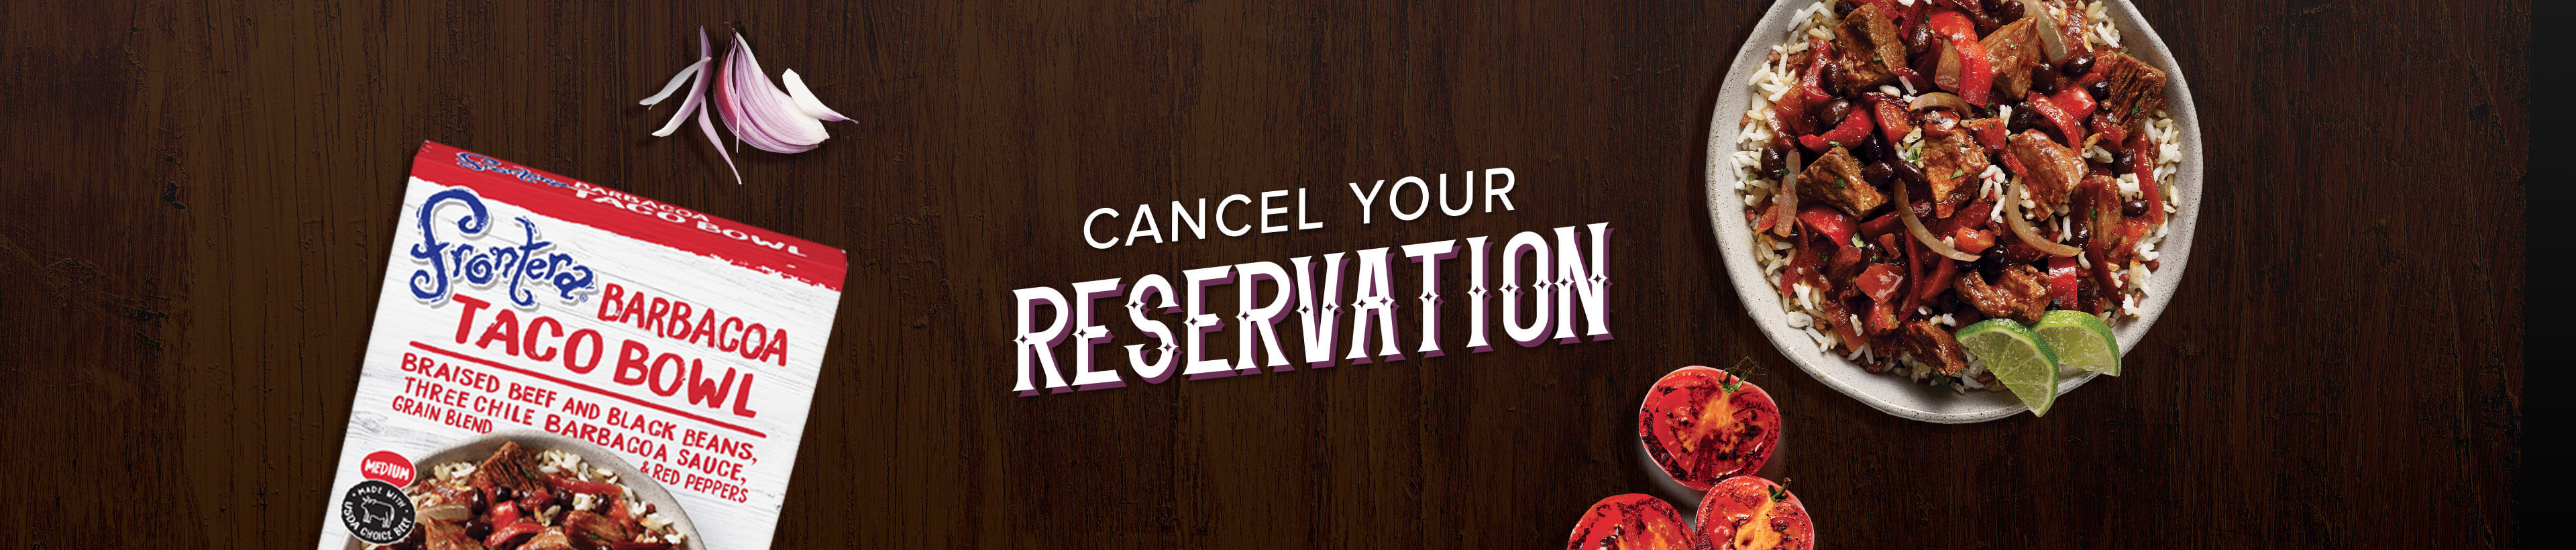 Cancel Your Reservation